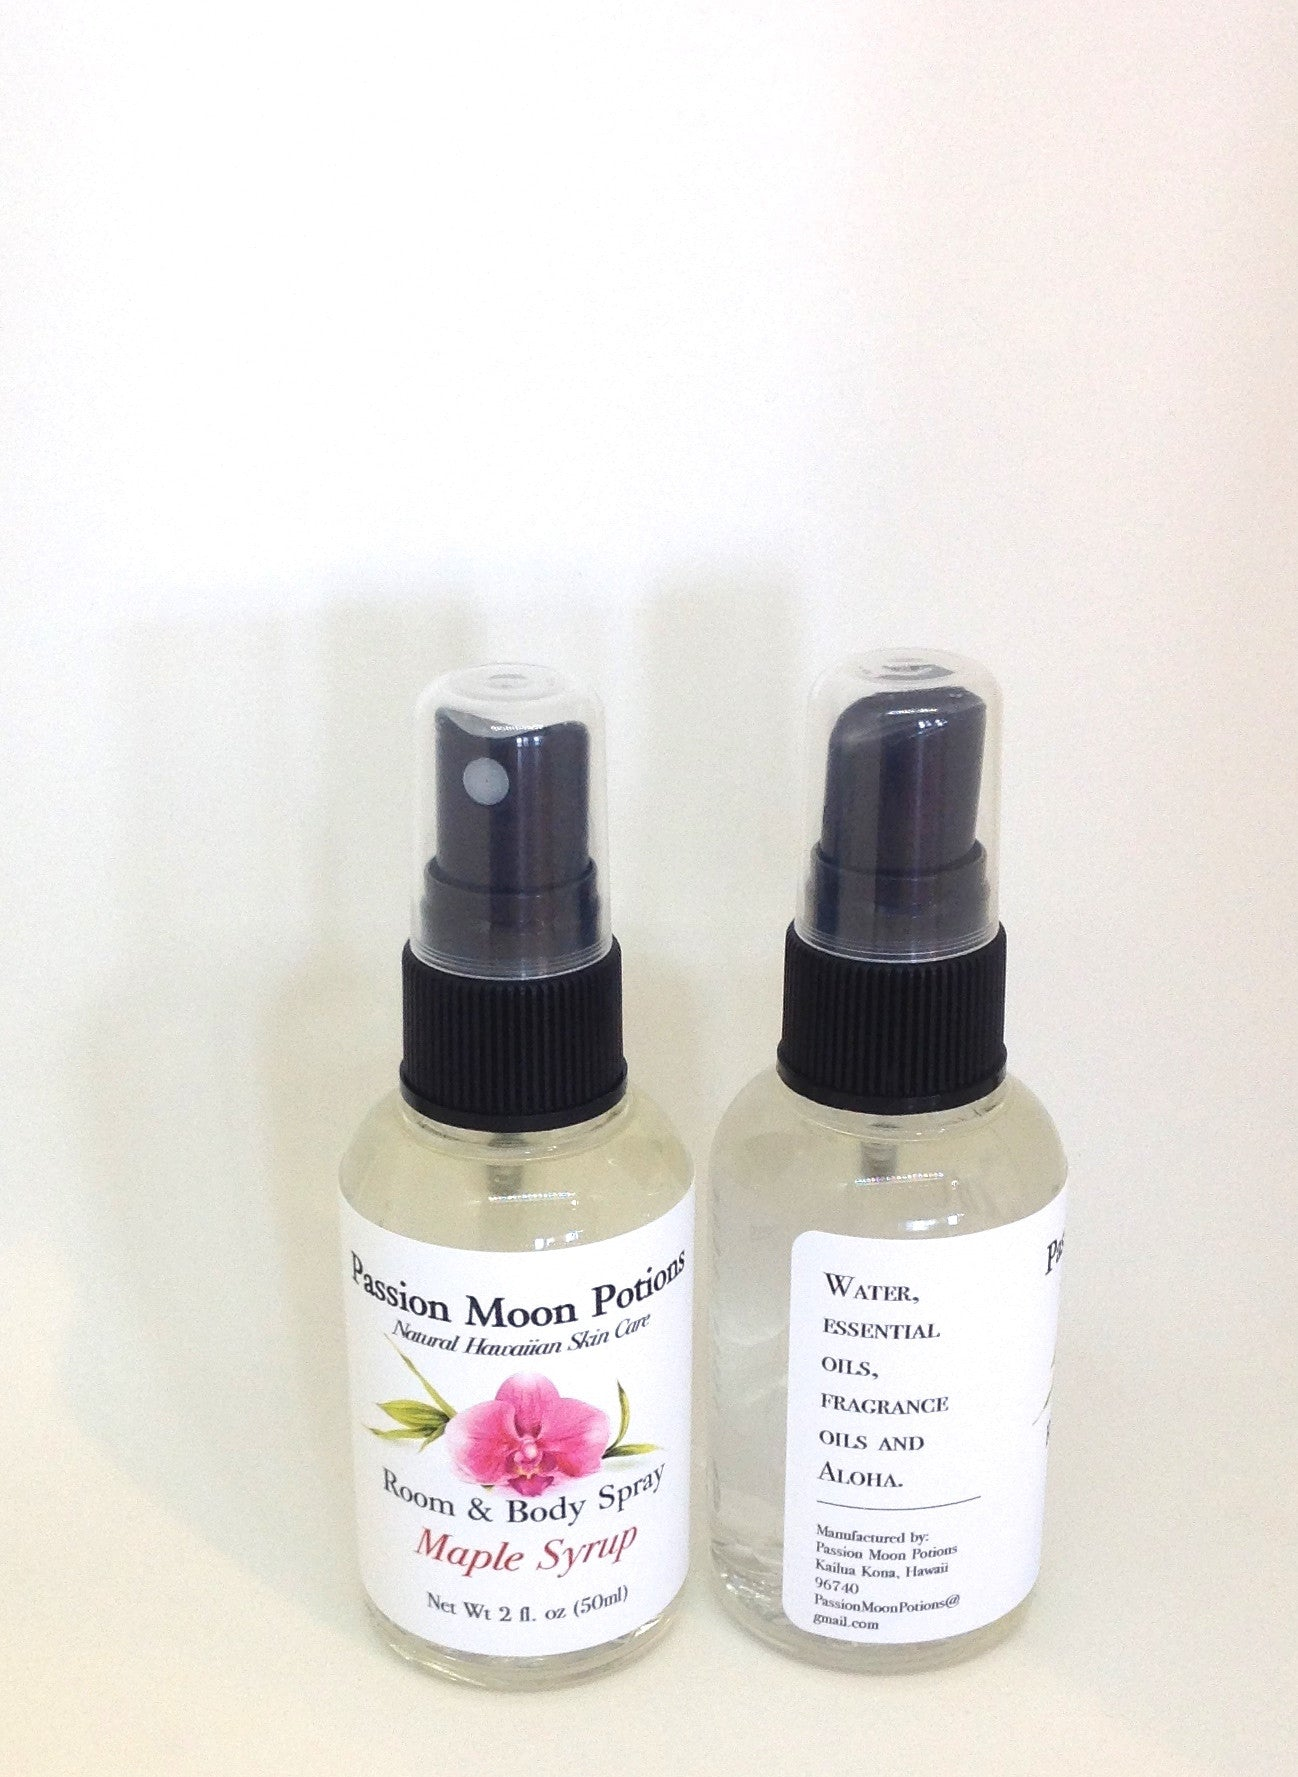 Room and Body Sprays - Passion Moon Potions - 7